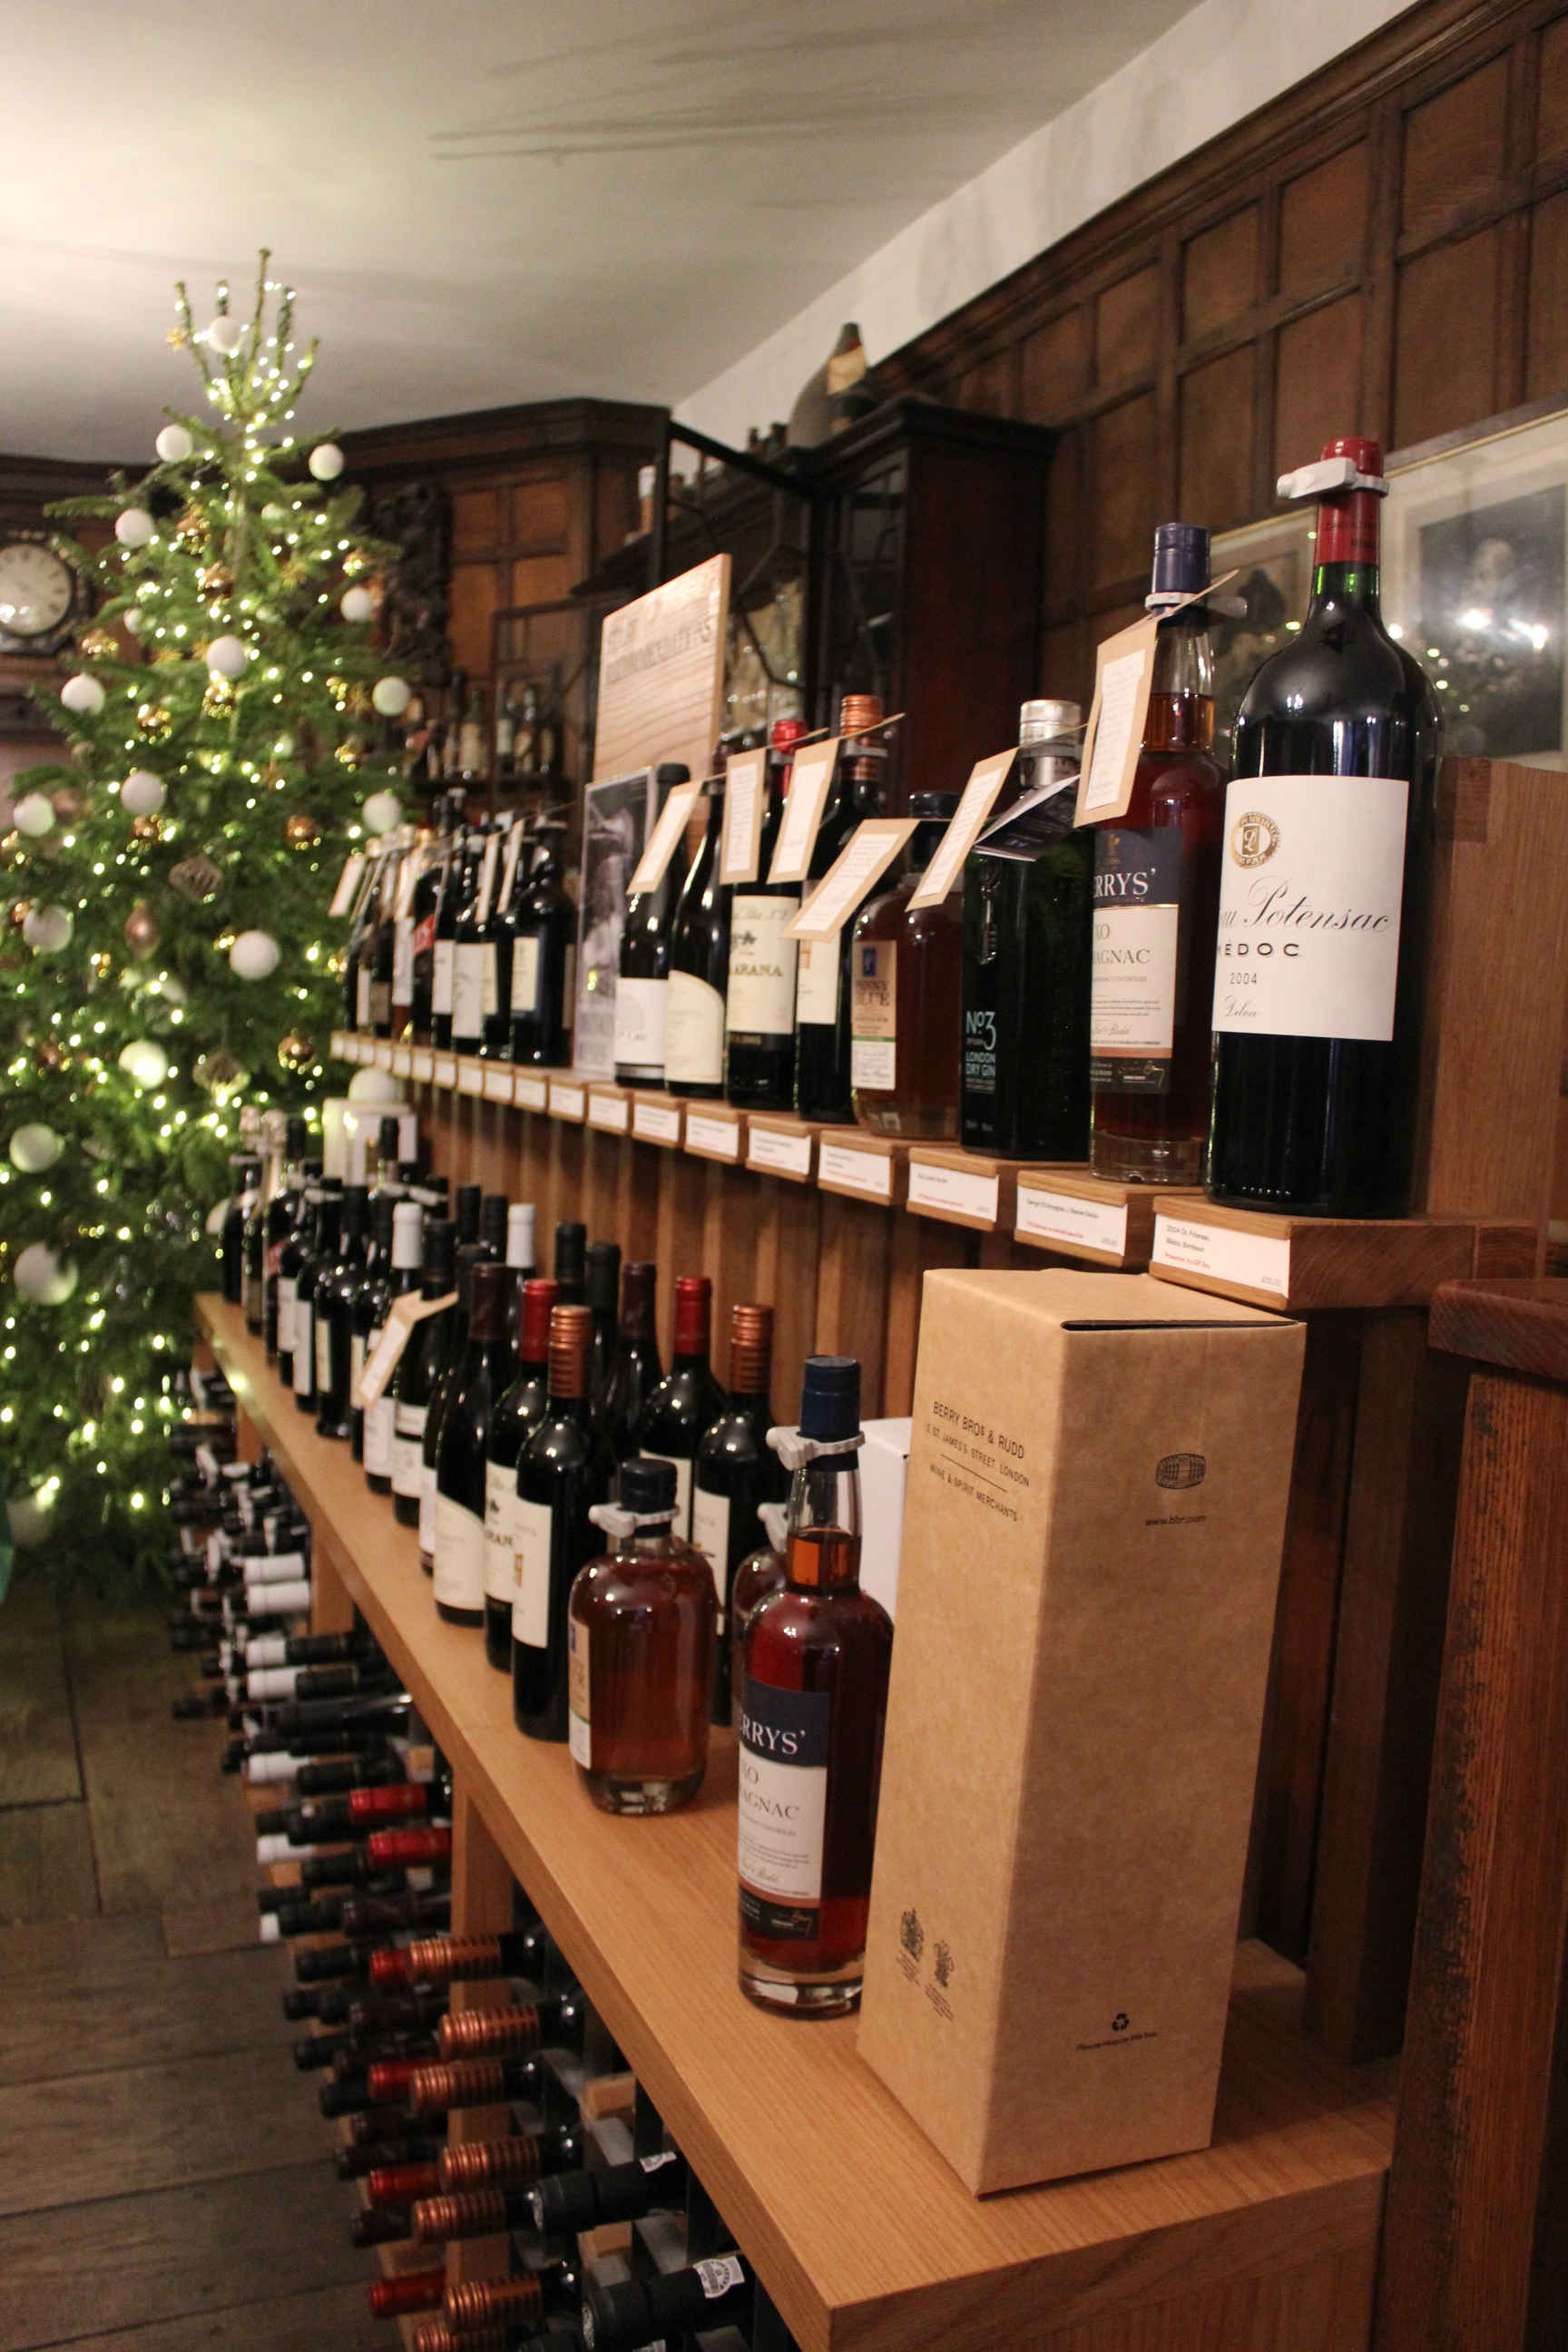 Britain's oldest wine and spirit merchant